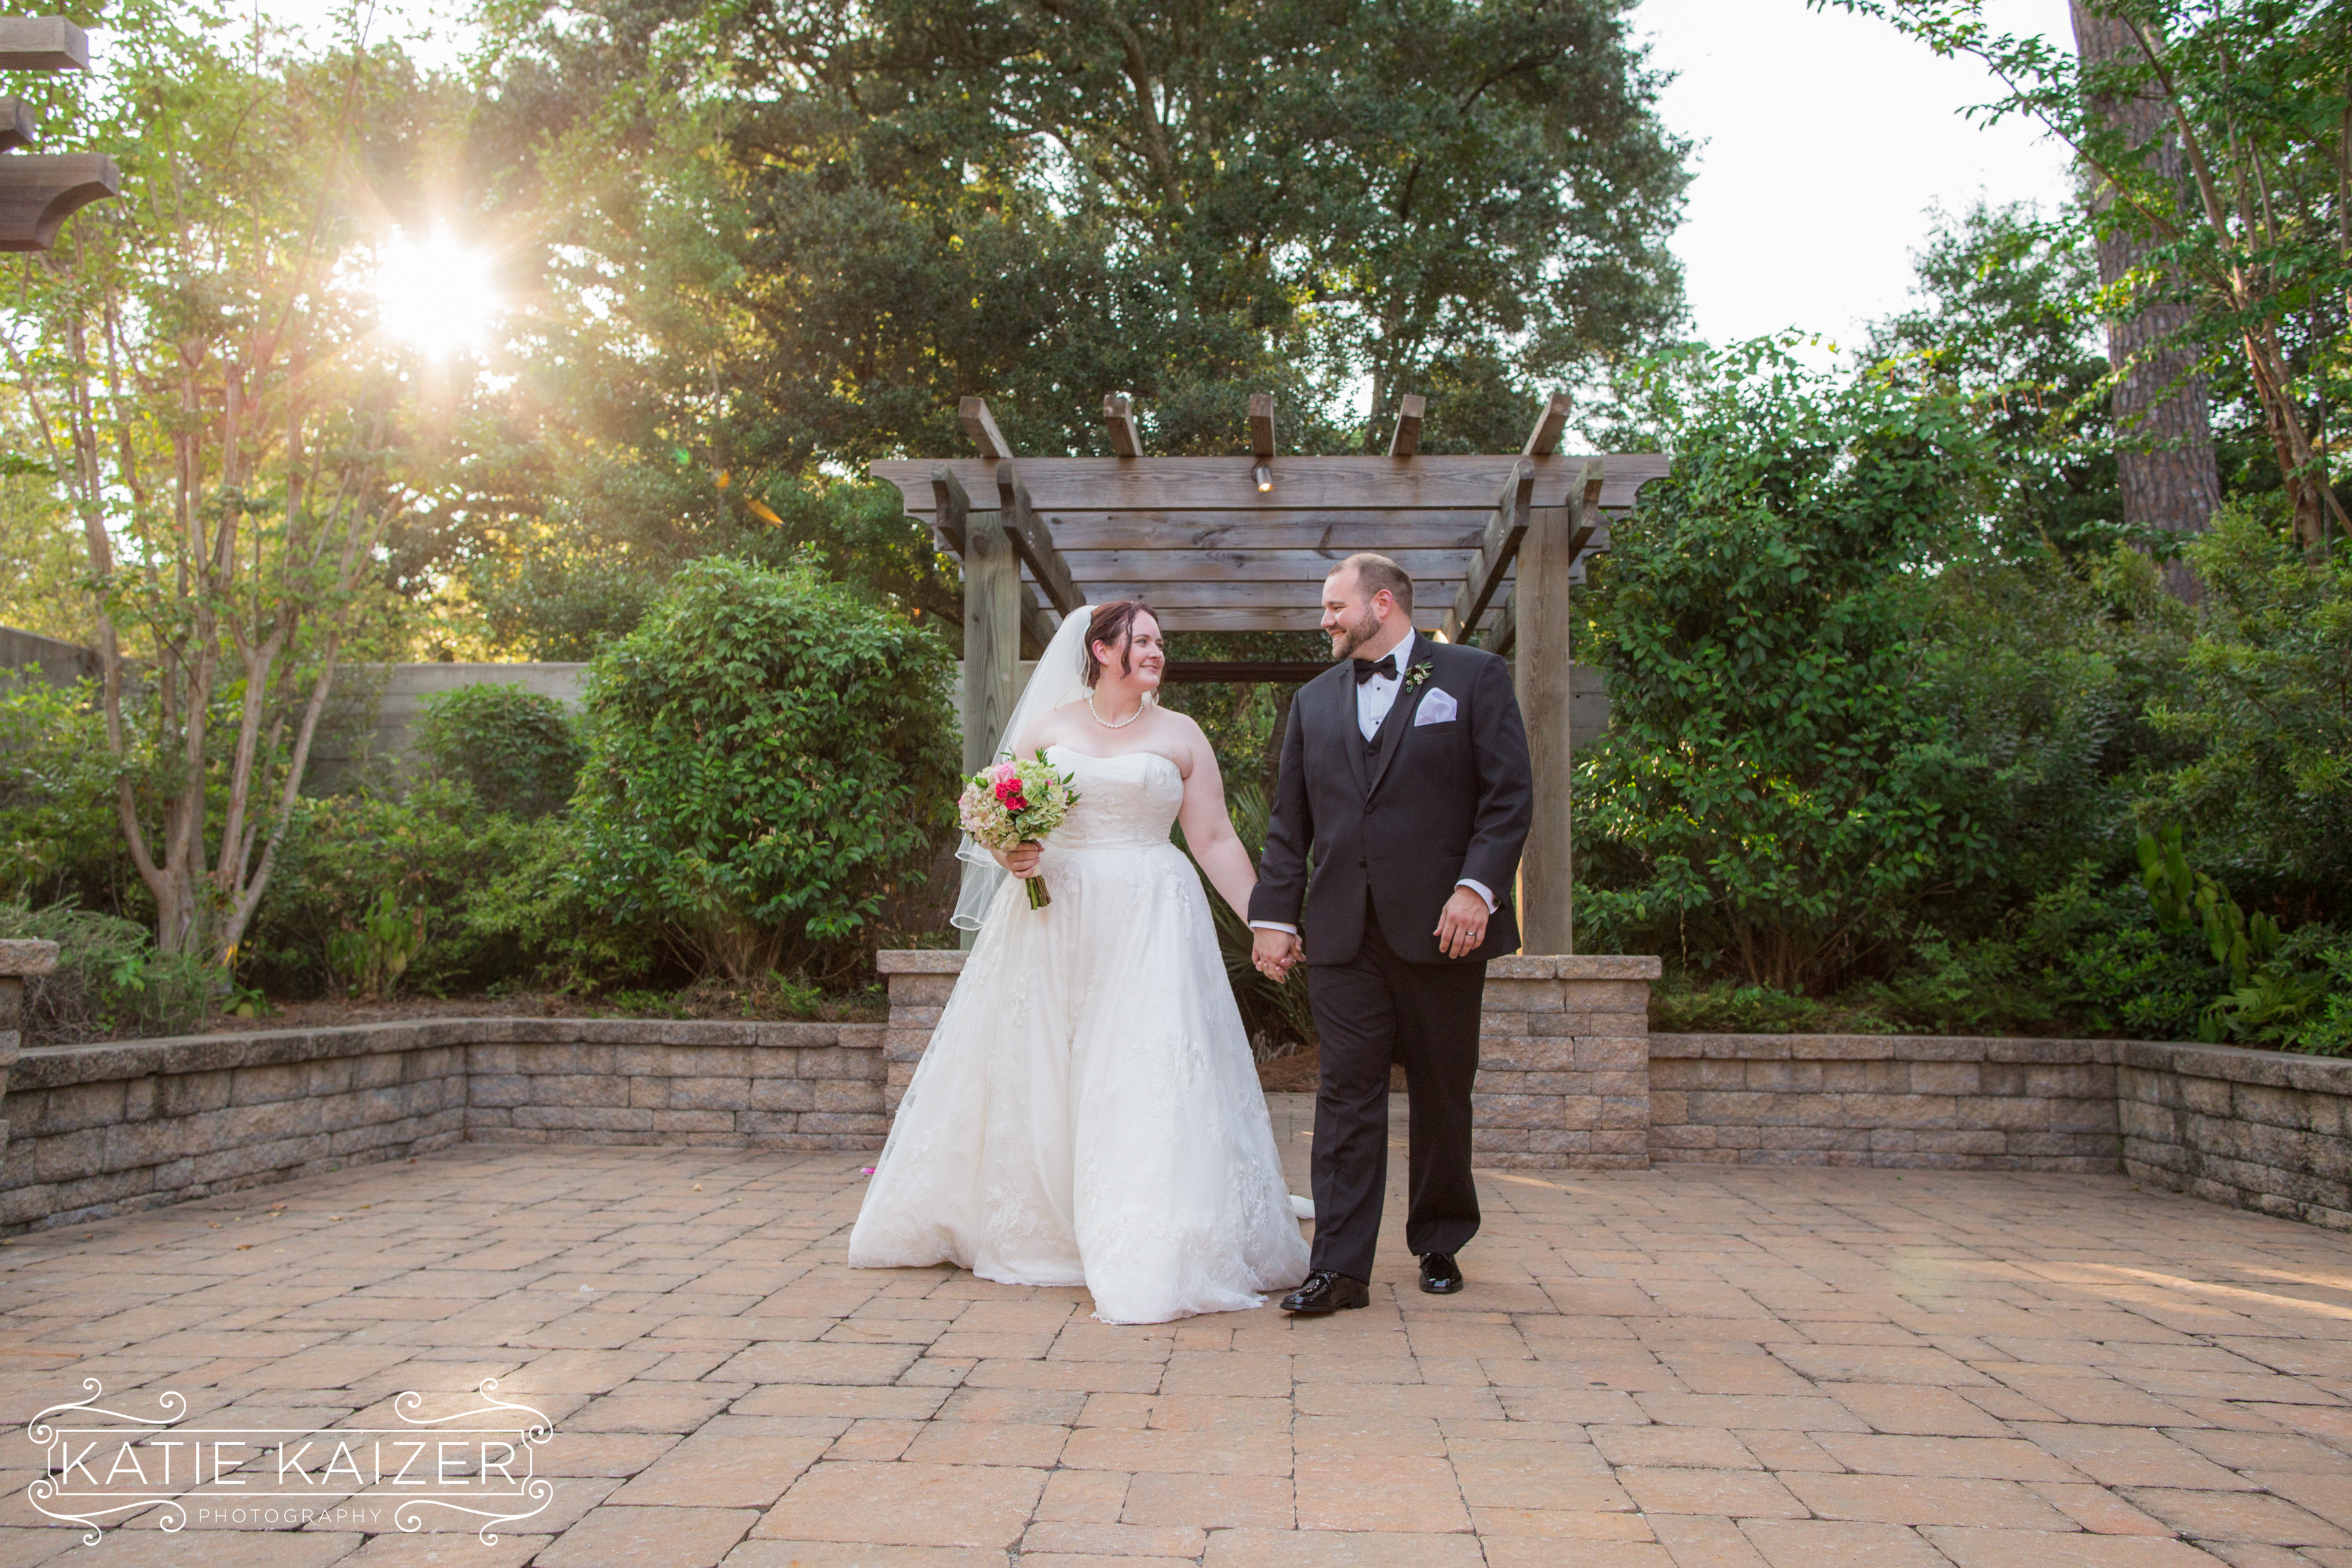 Weddings2014_012_KatieKaizerPhotography